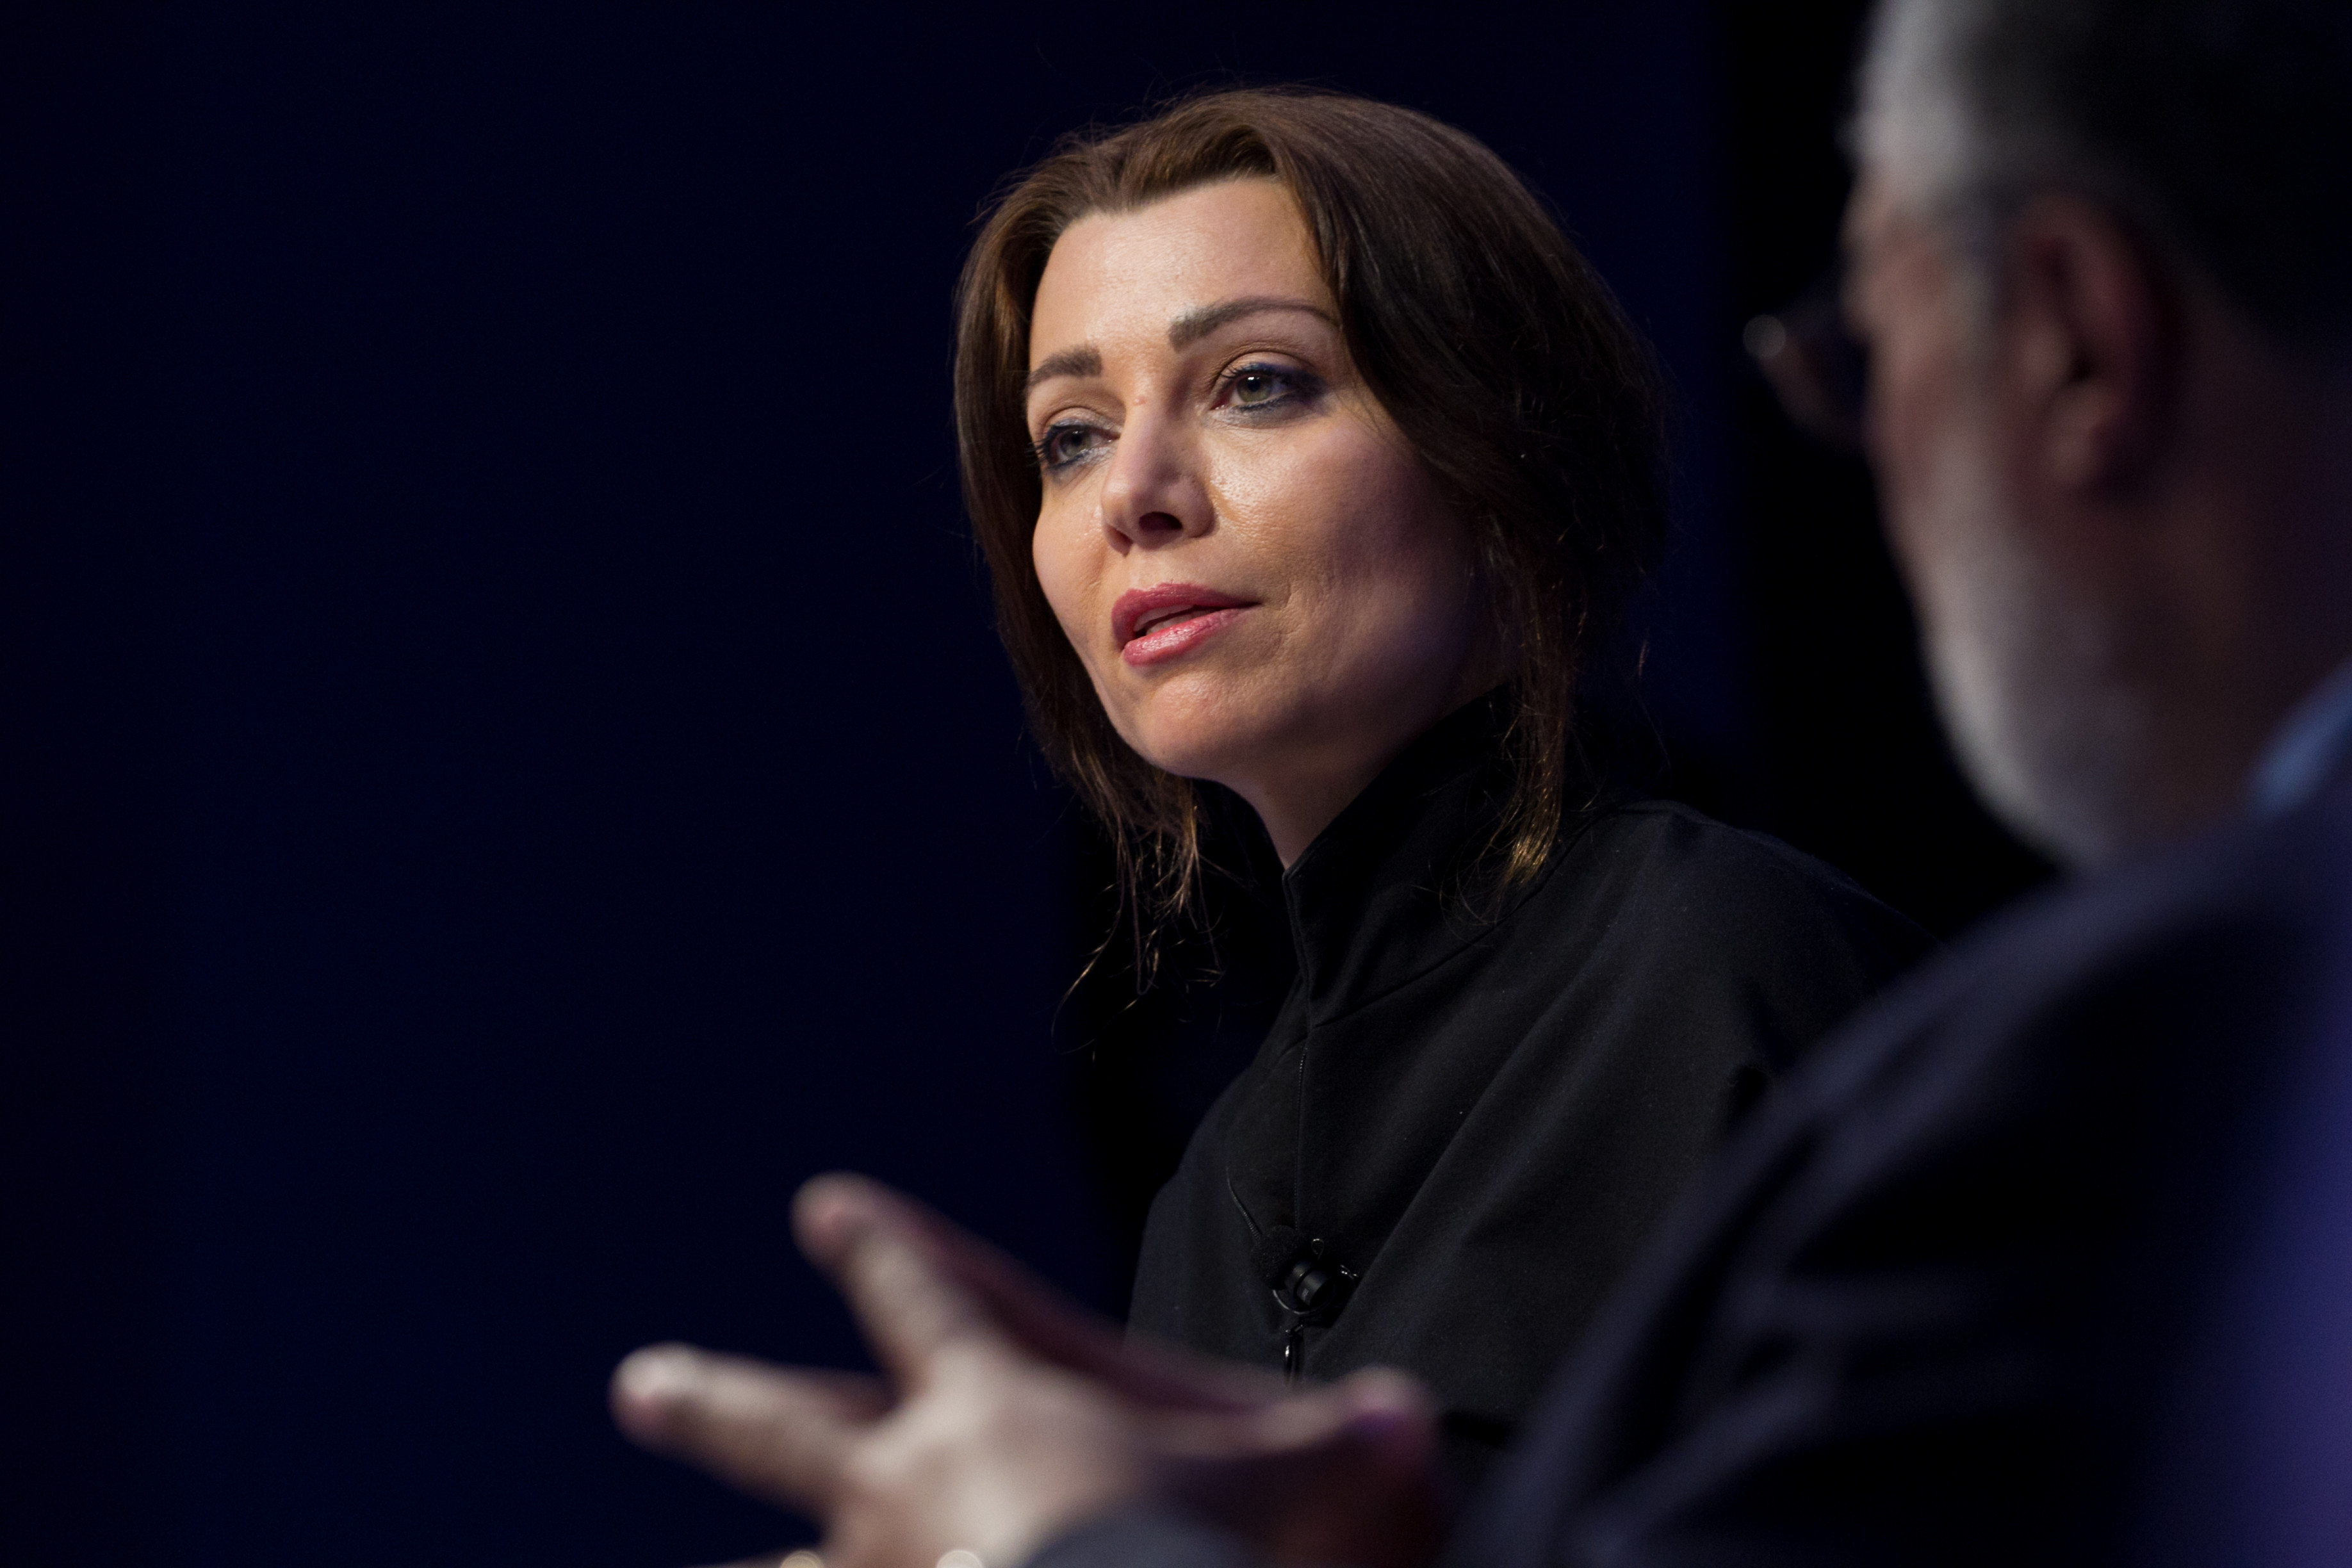 Elif Shafak, Author, Turkey speaking at the Annual Meeting 2017 of the World Economic Forum in Davos, January 18, 2017Copyright by World Economic Forum / Greg Beadle